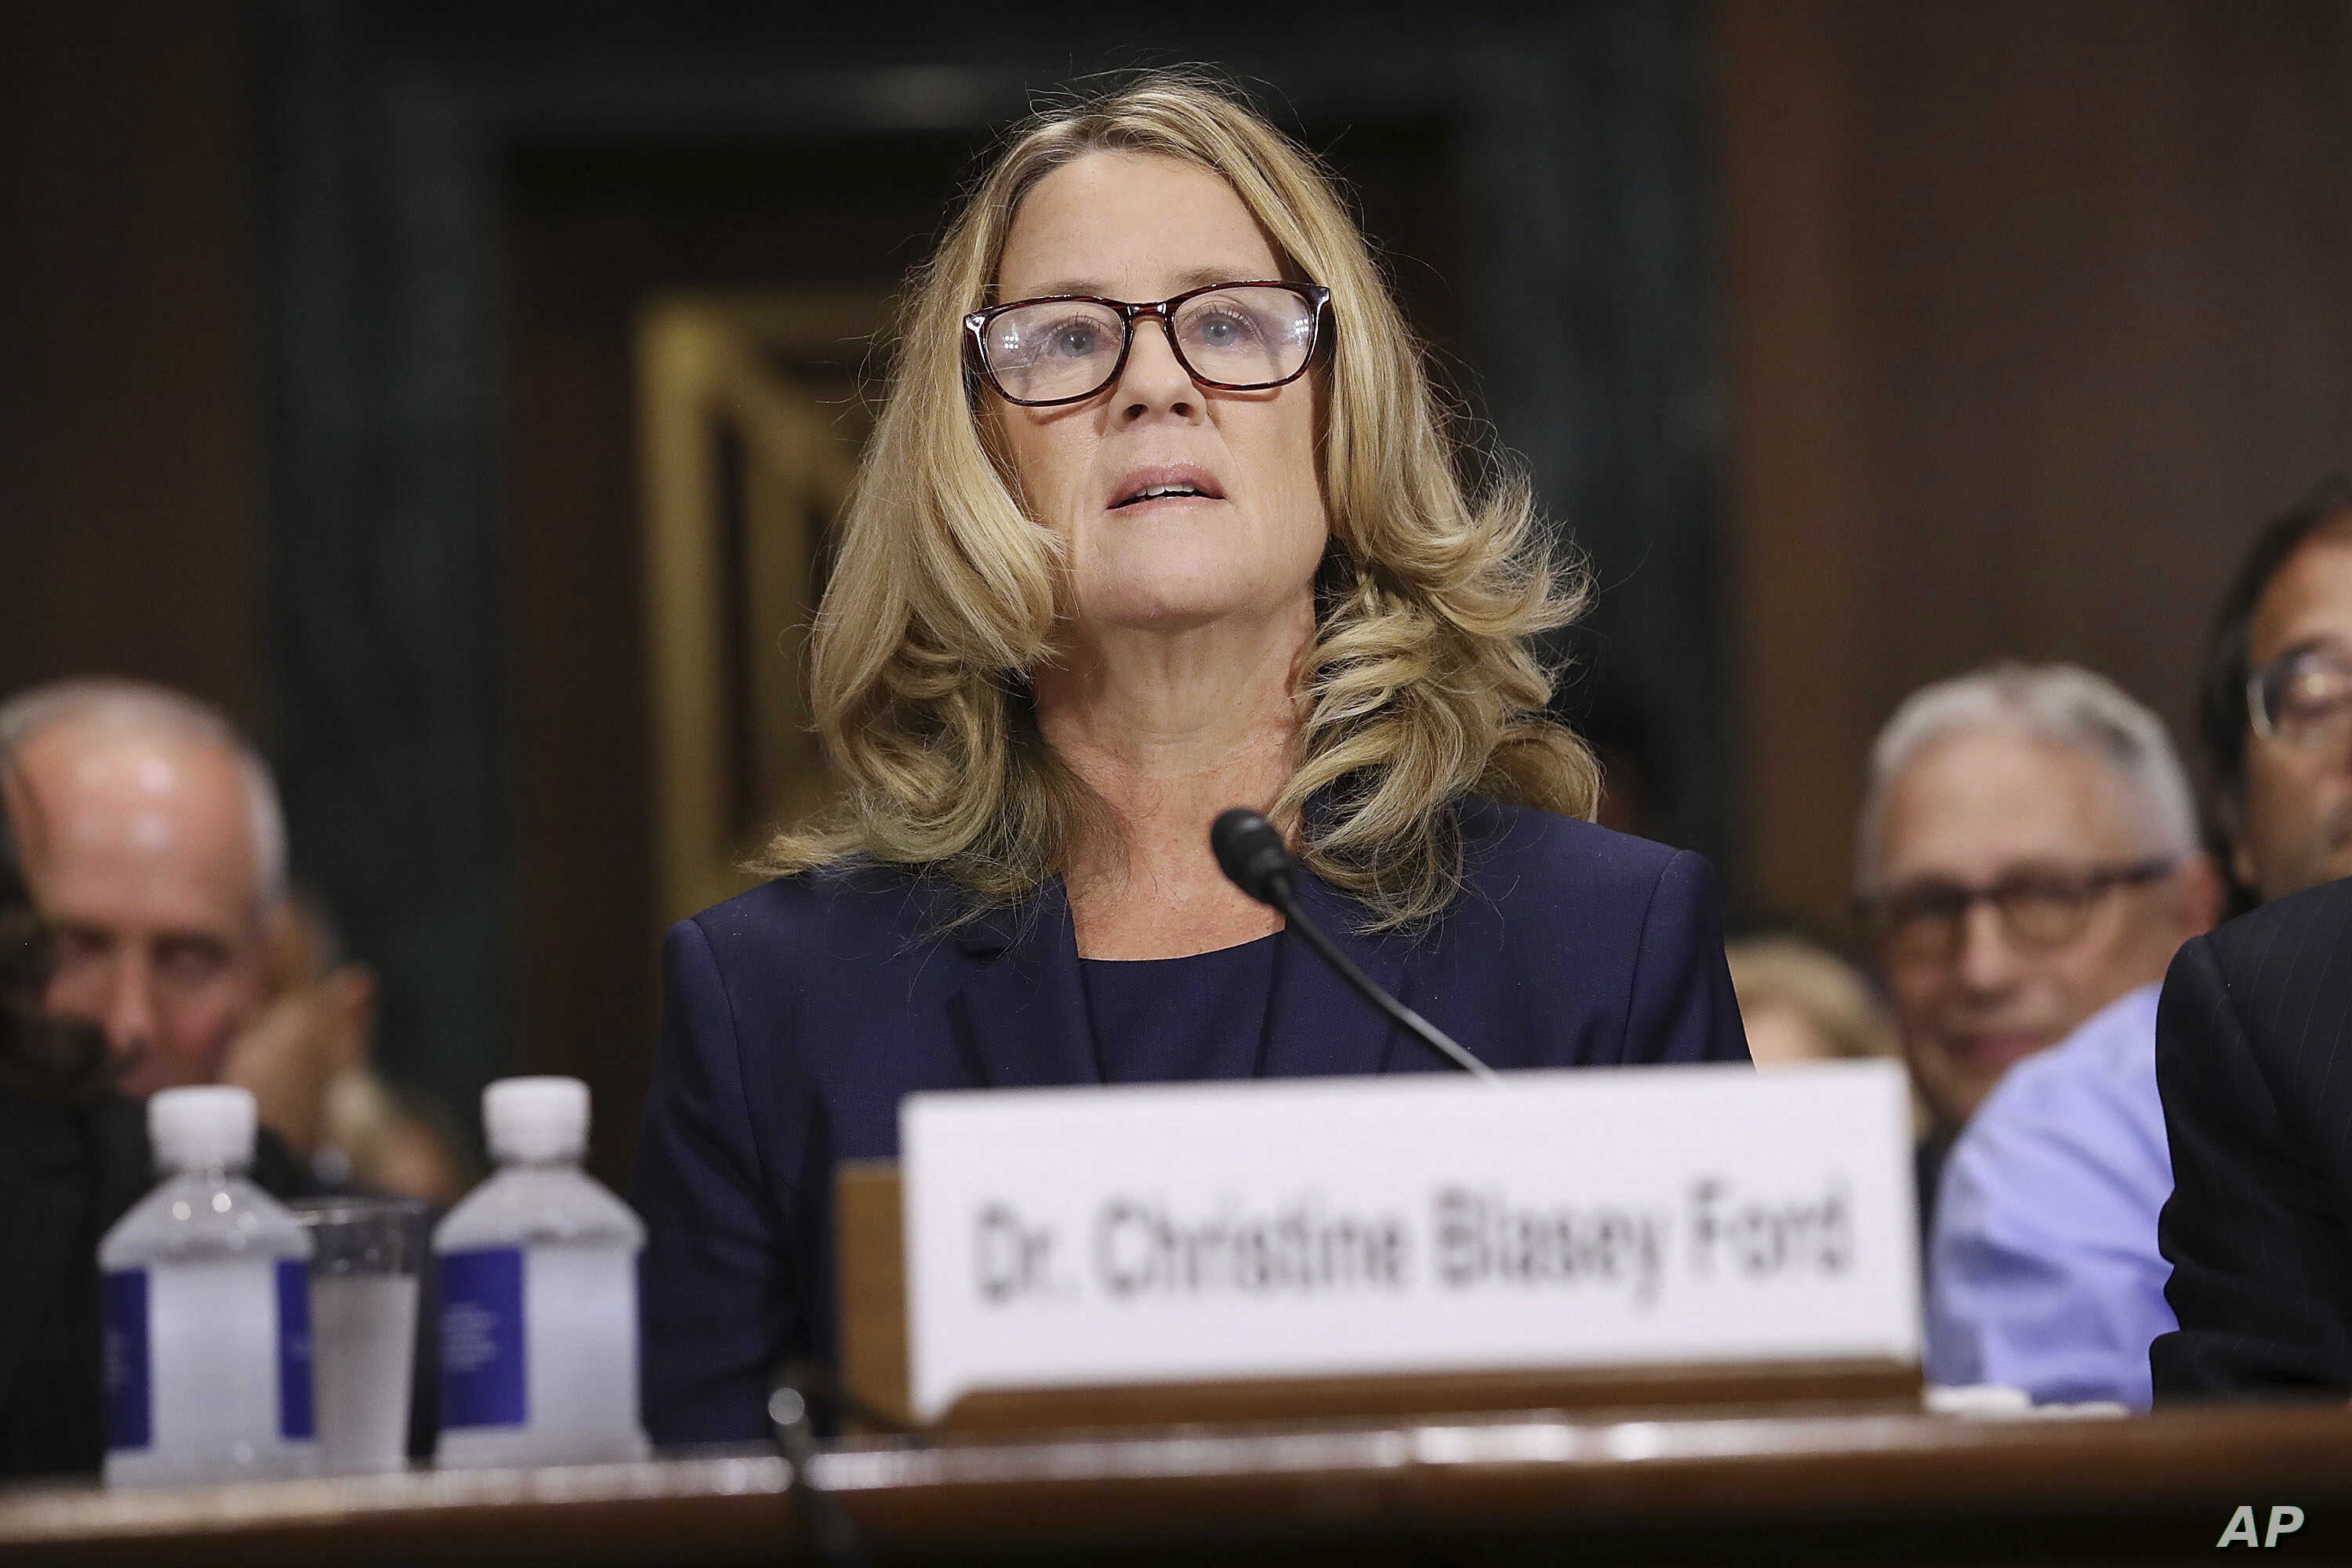 Christine Blasey Ford testifies before the Senate Judiciary Committee, Sept. 27, 2018 in Washington.